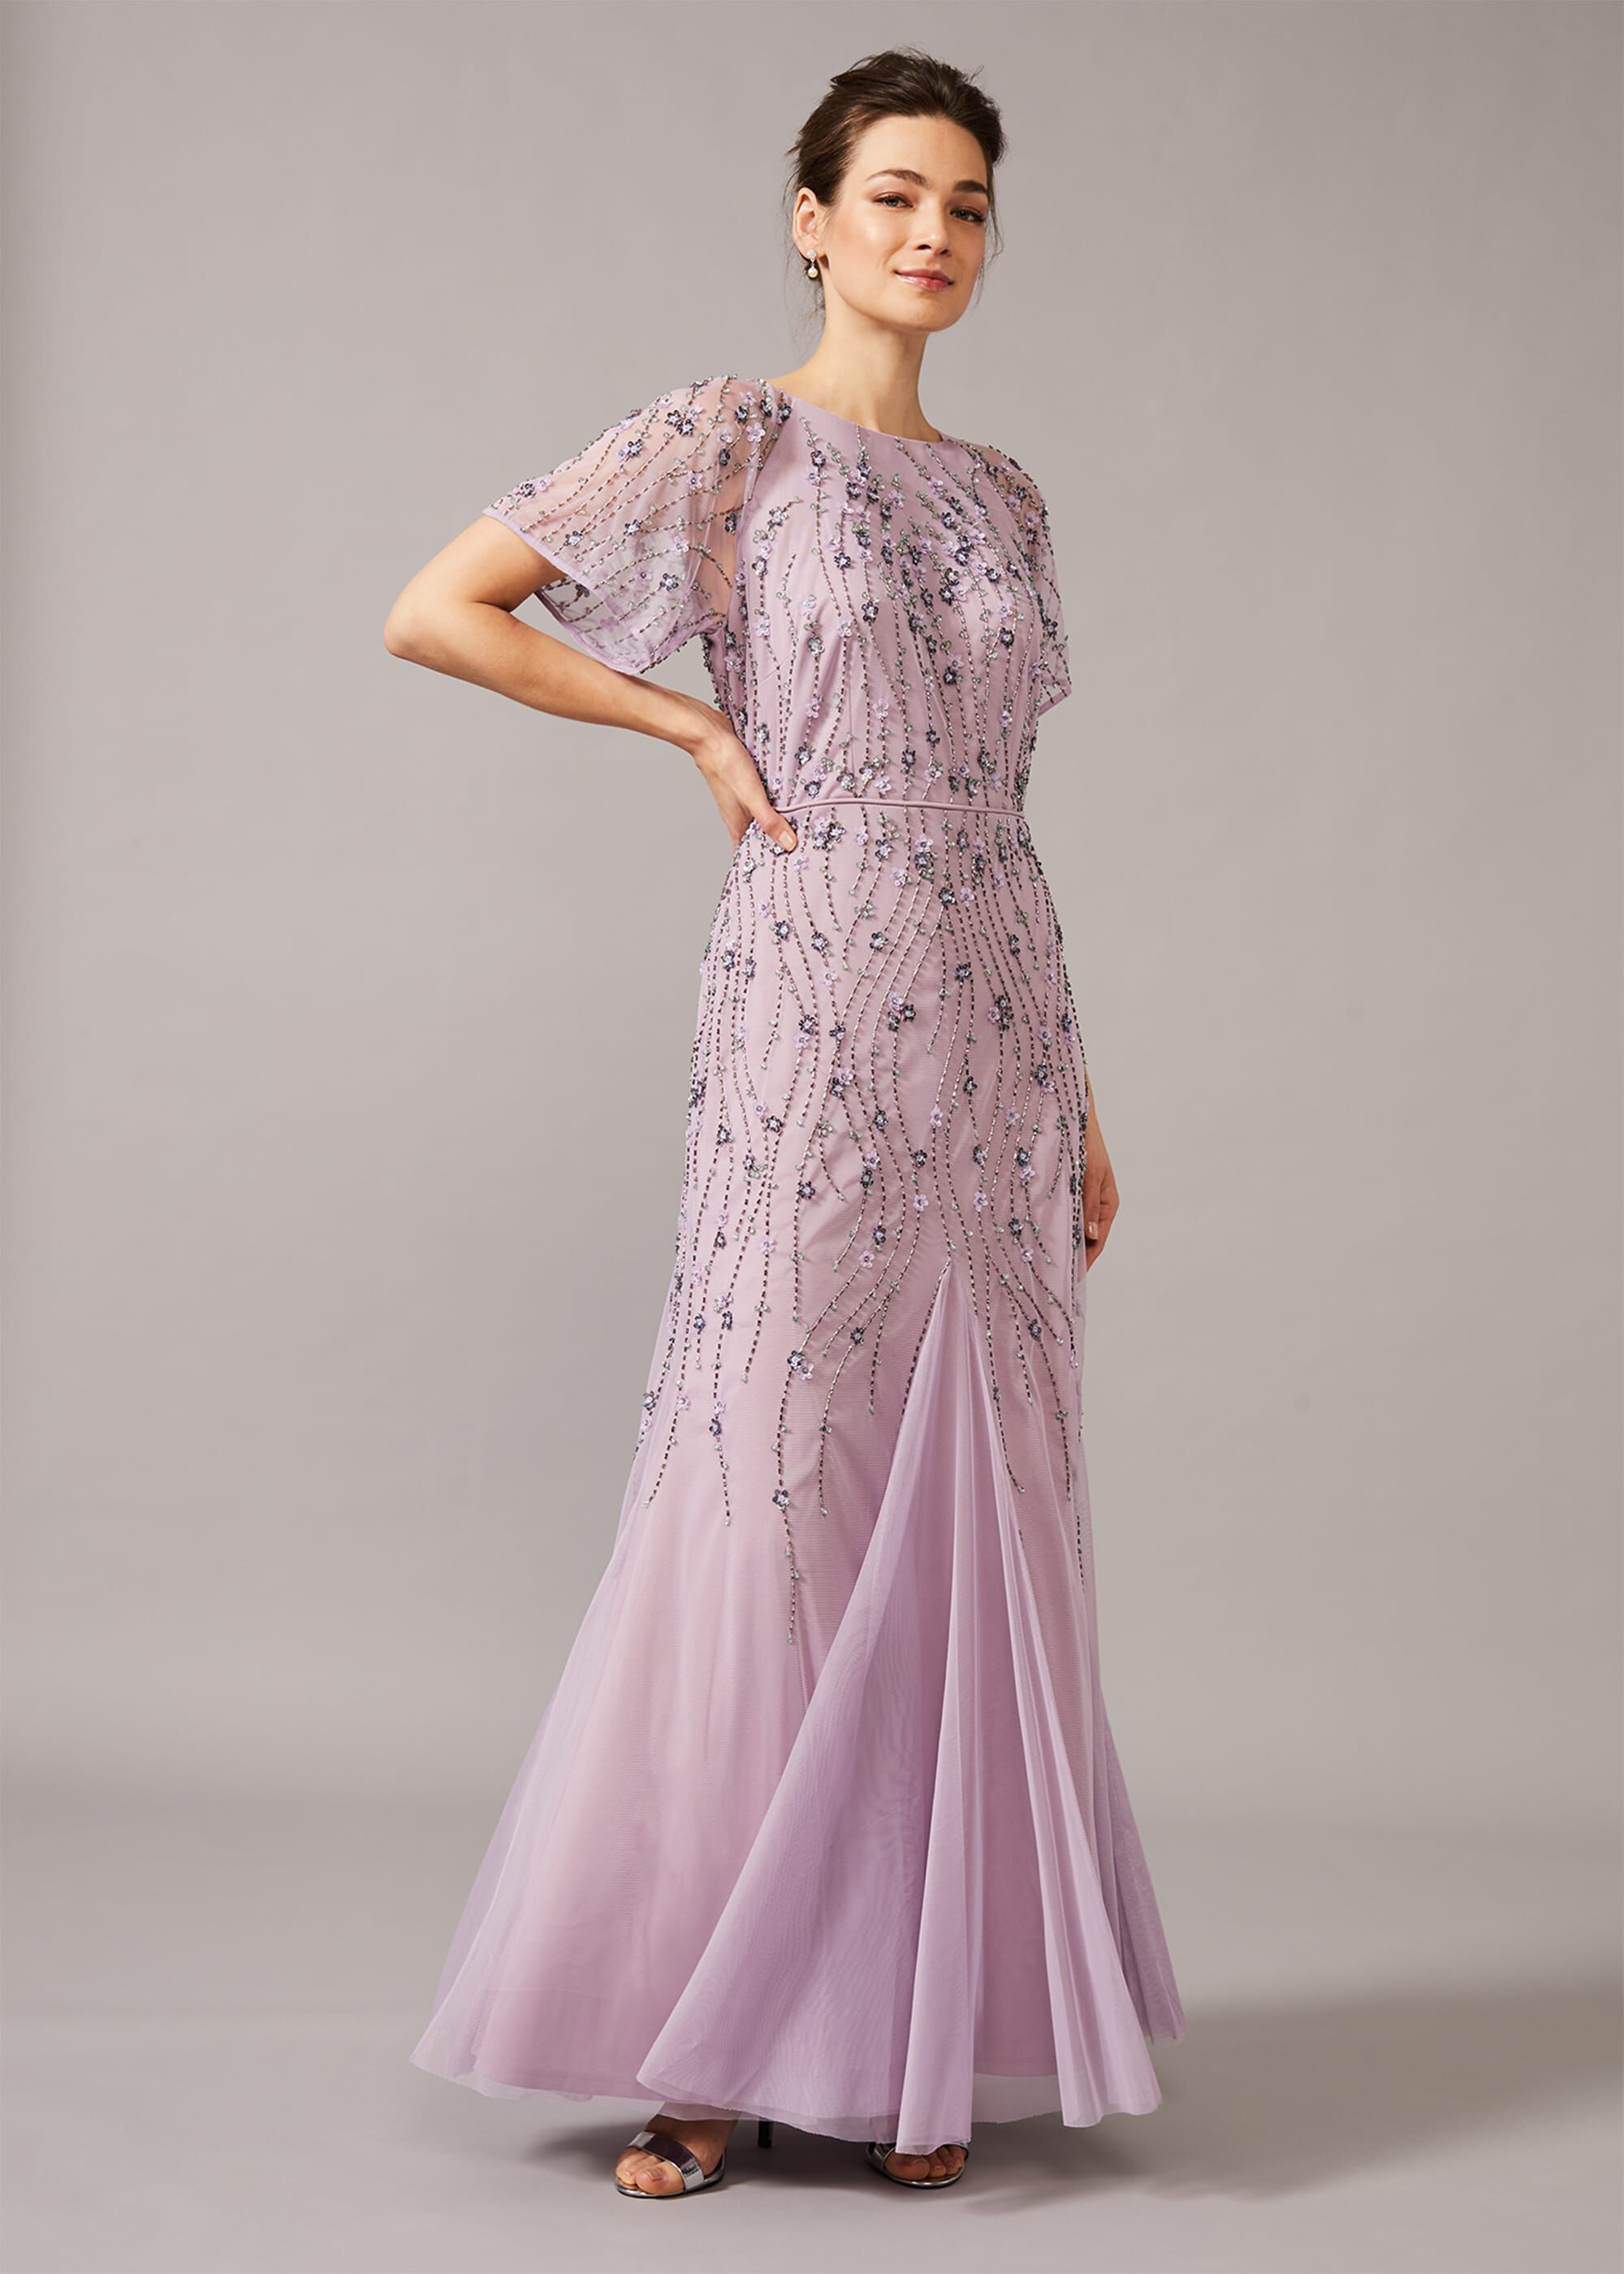 Phase Eight Florisa Embellished Dress, Purple, Maxi, Occasion Dress